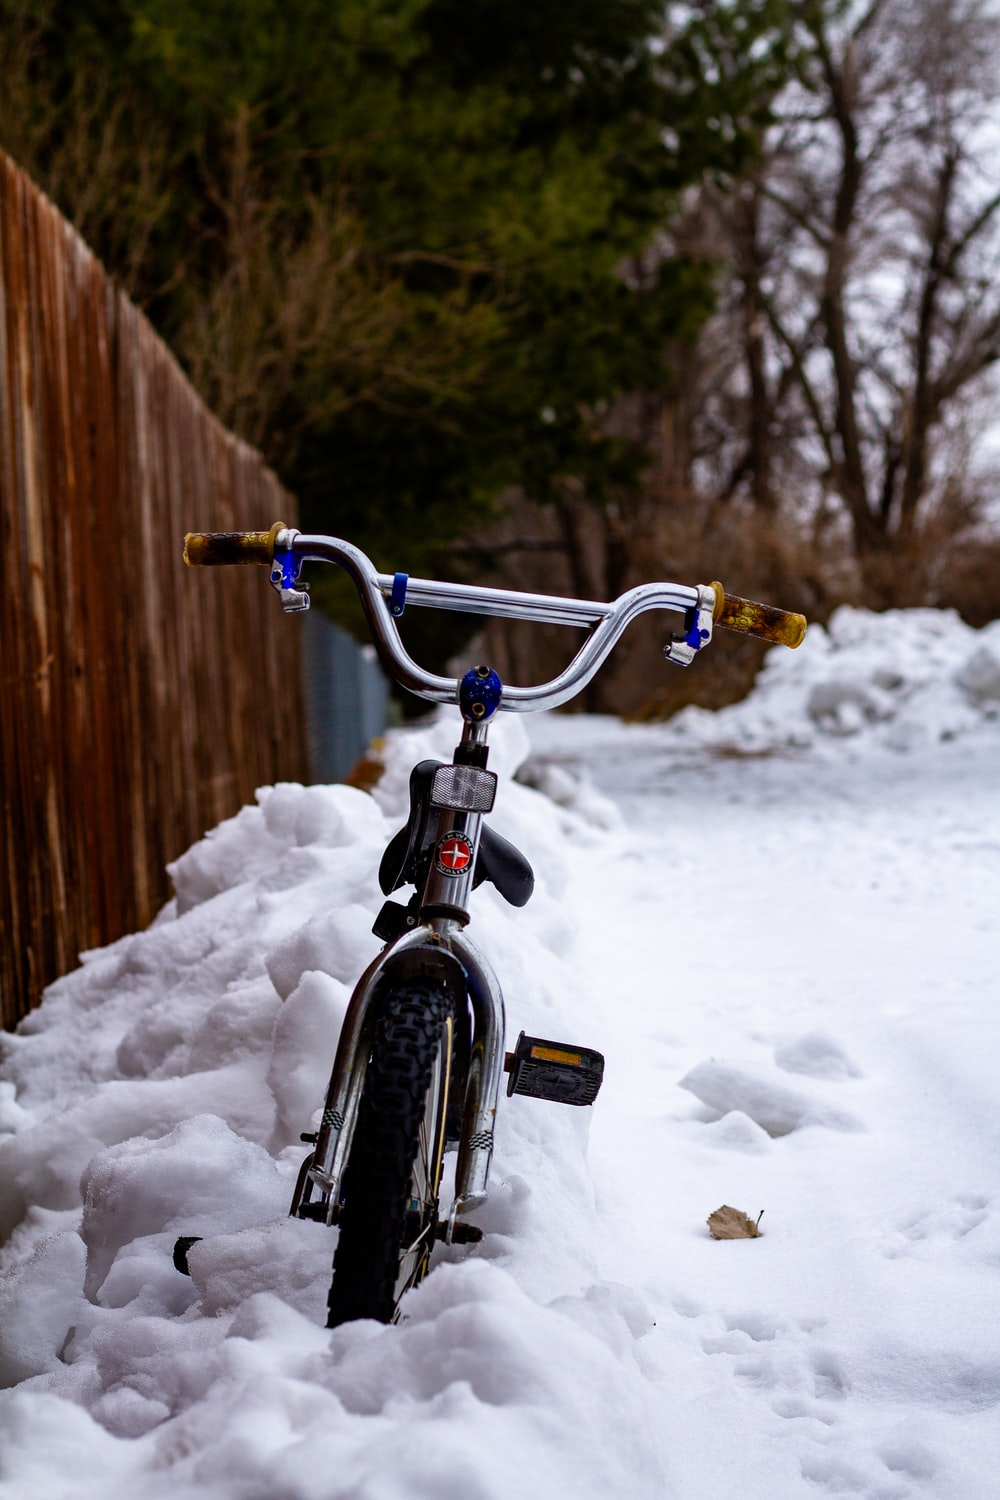 black and gray bicycle on snow covered ground during daytime